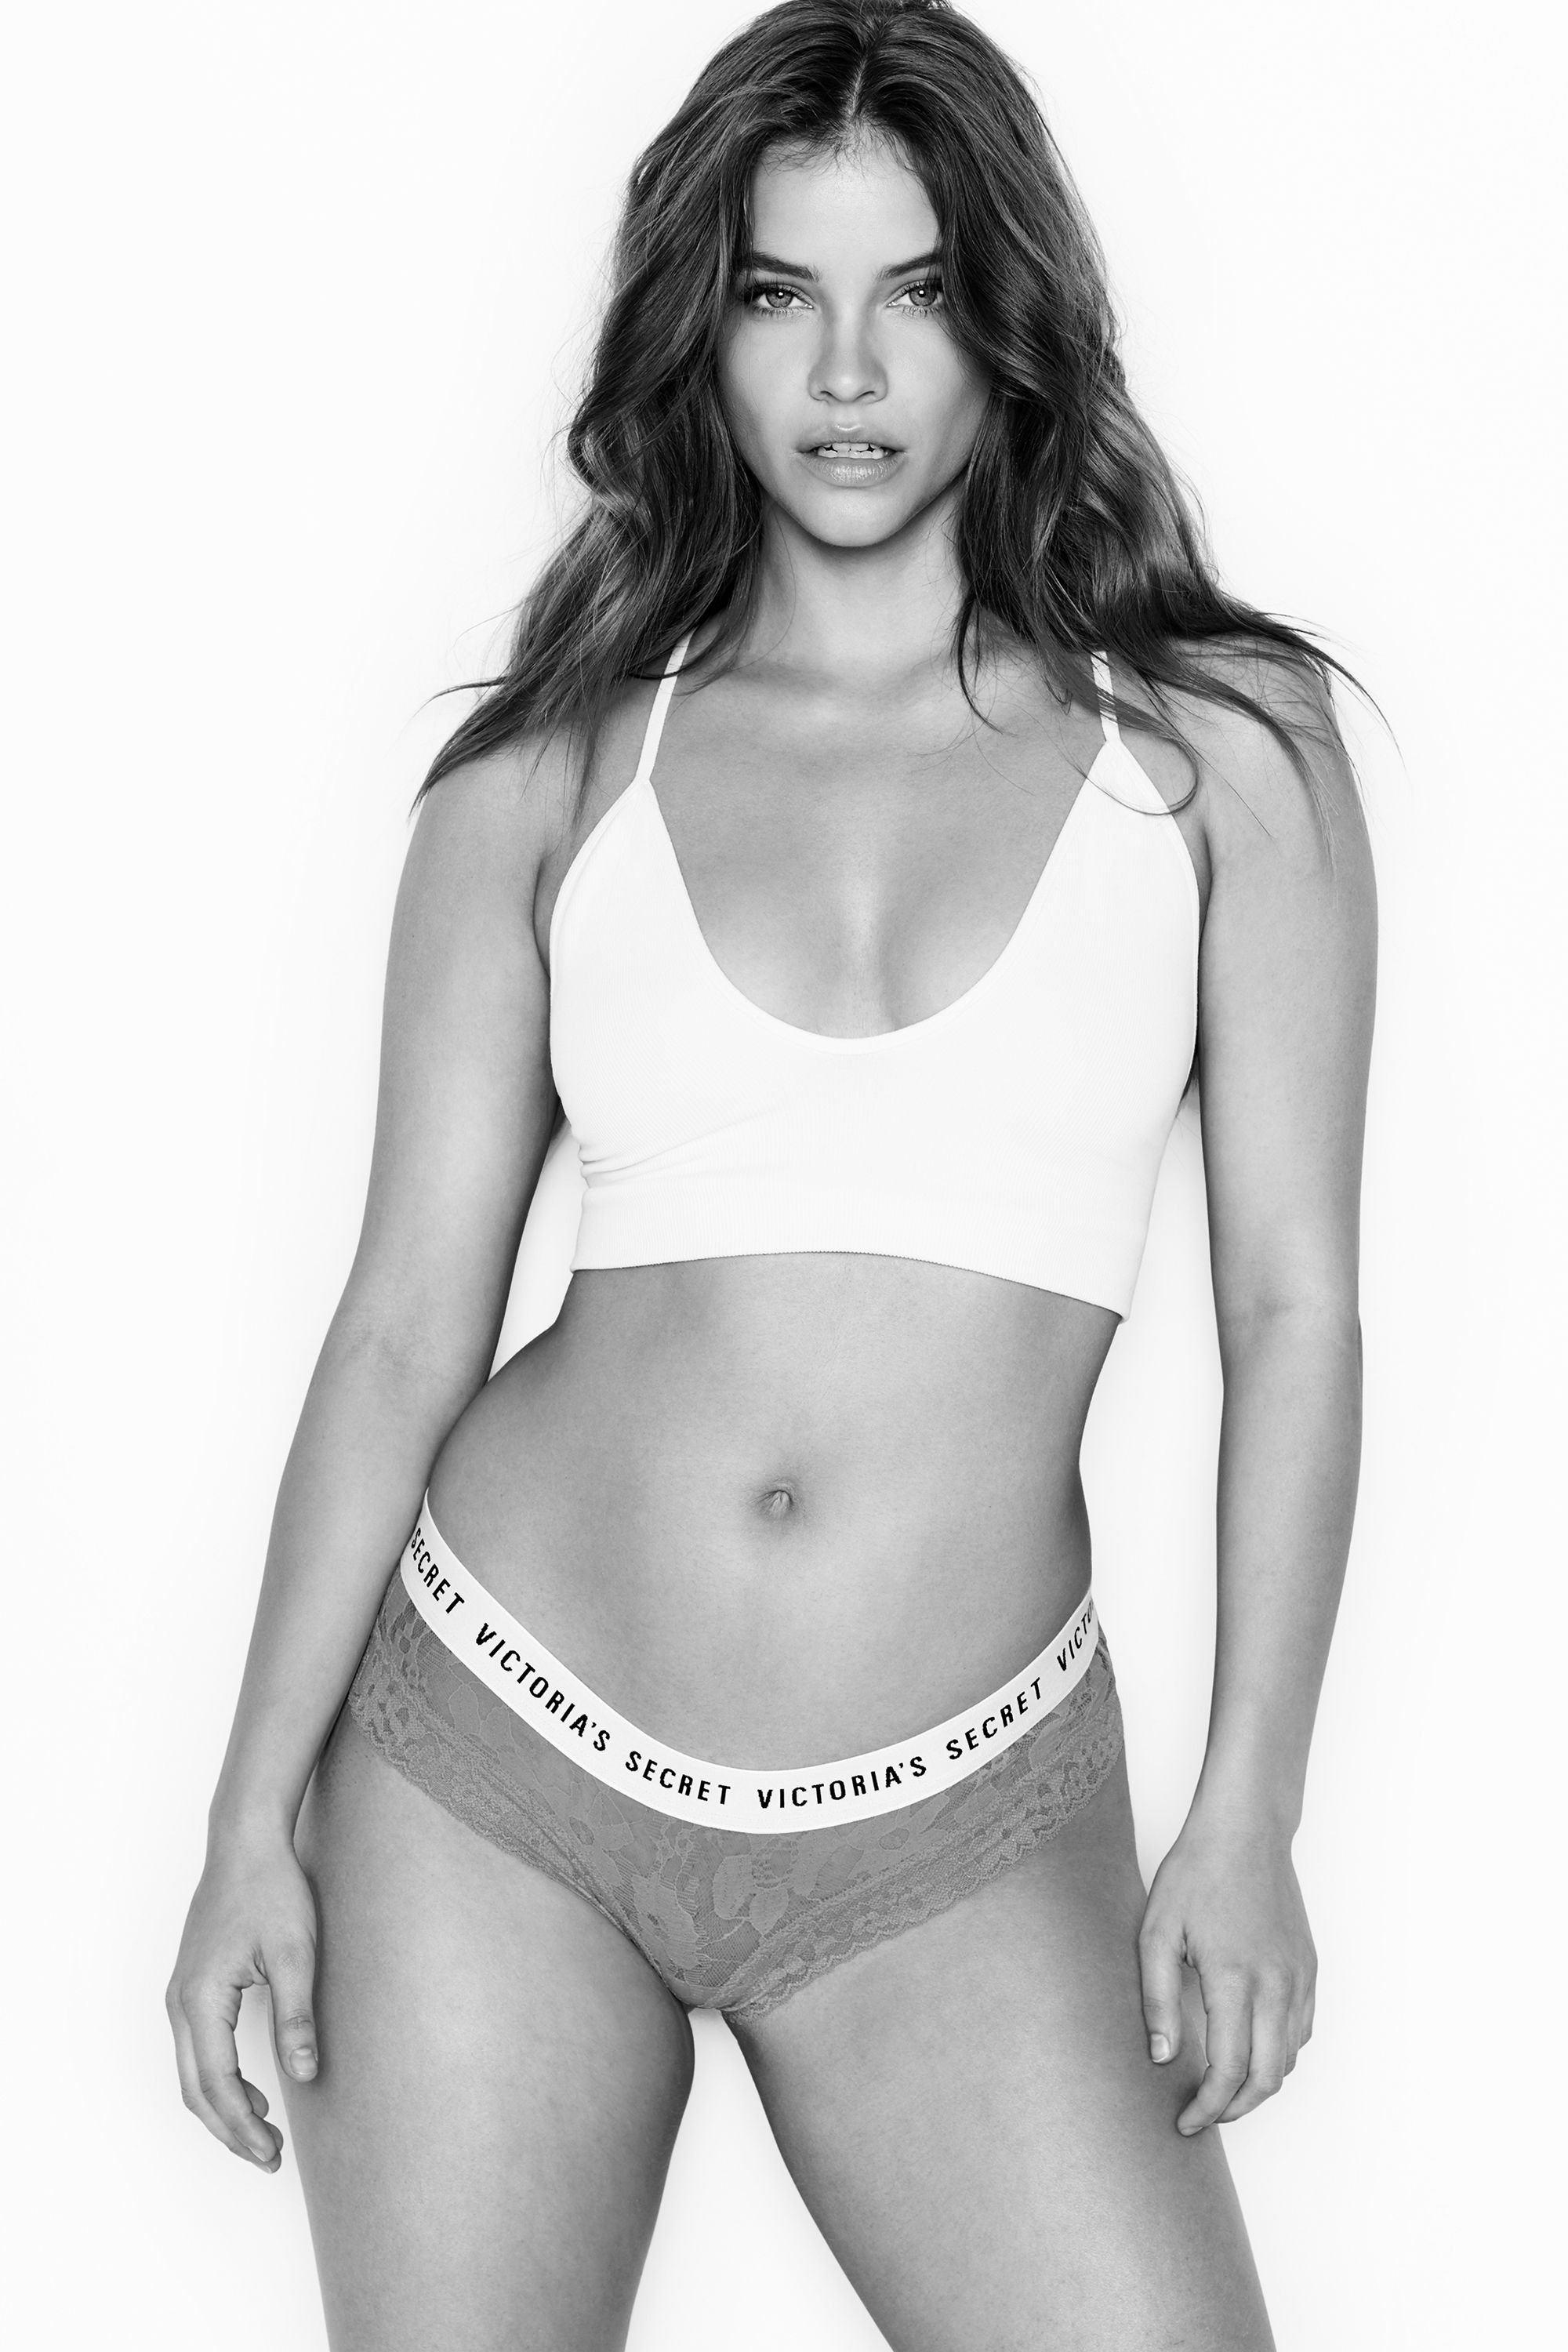 ea06f3448c Barbara Palvin is officially a Victoria's Secret Angel